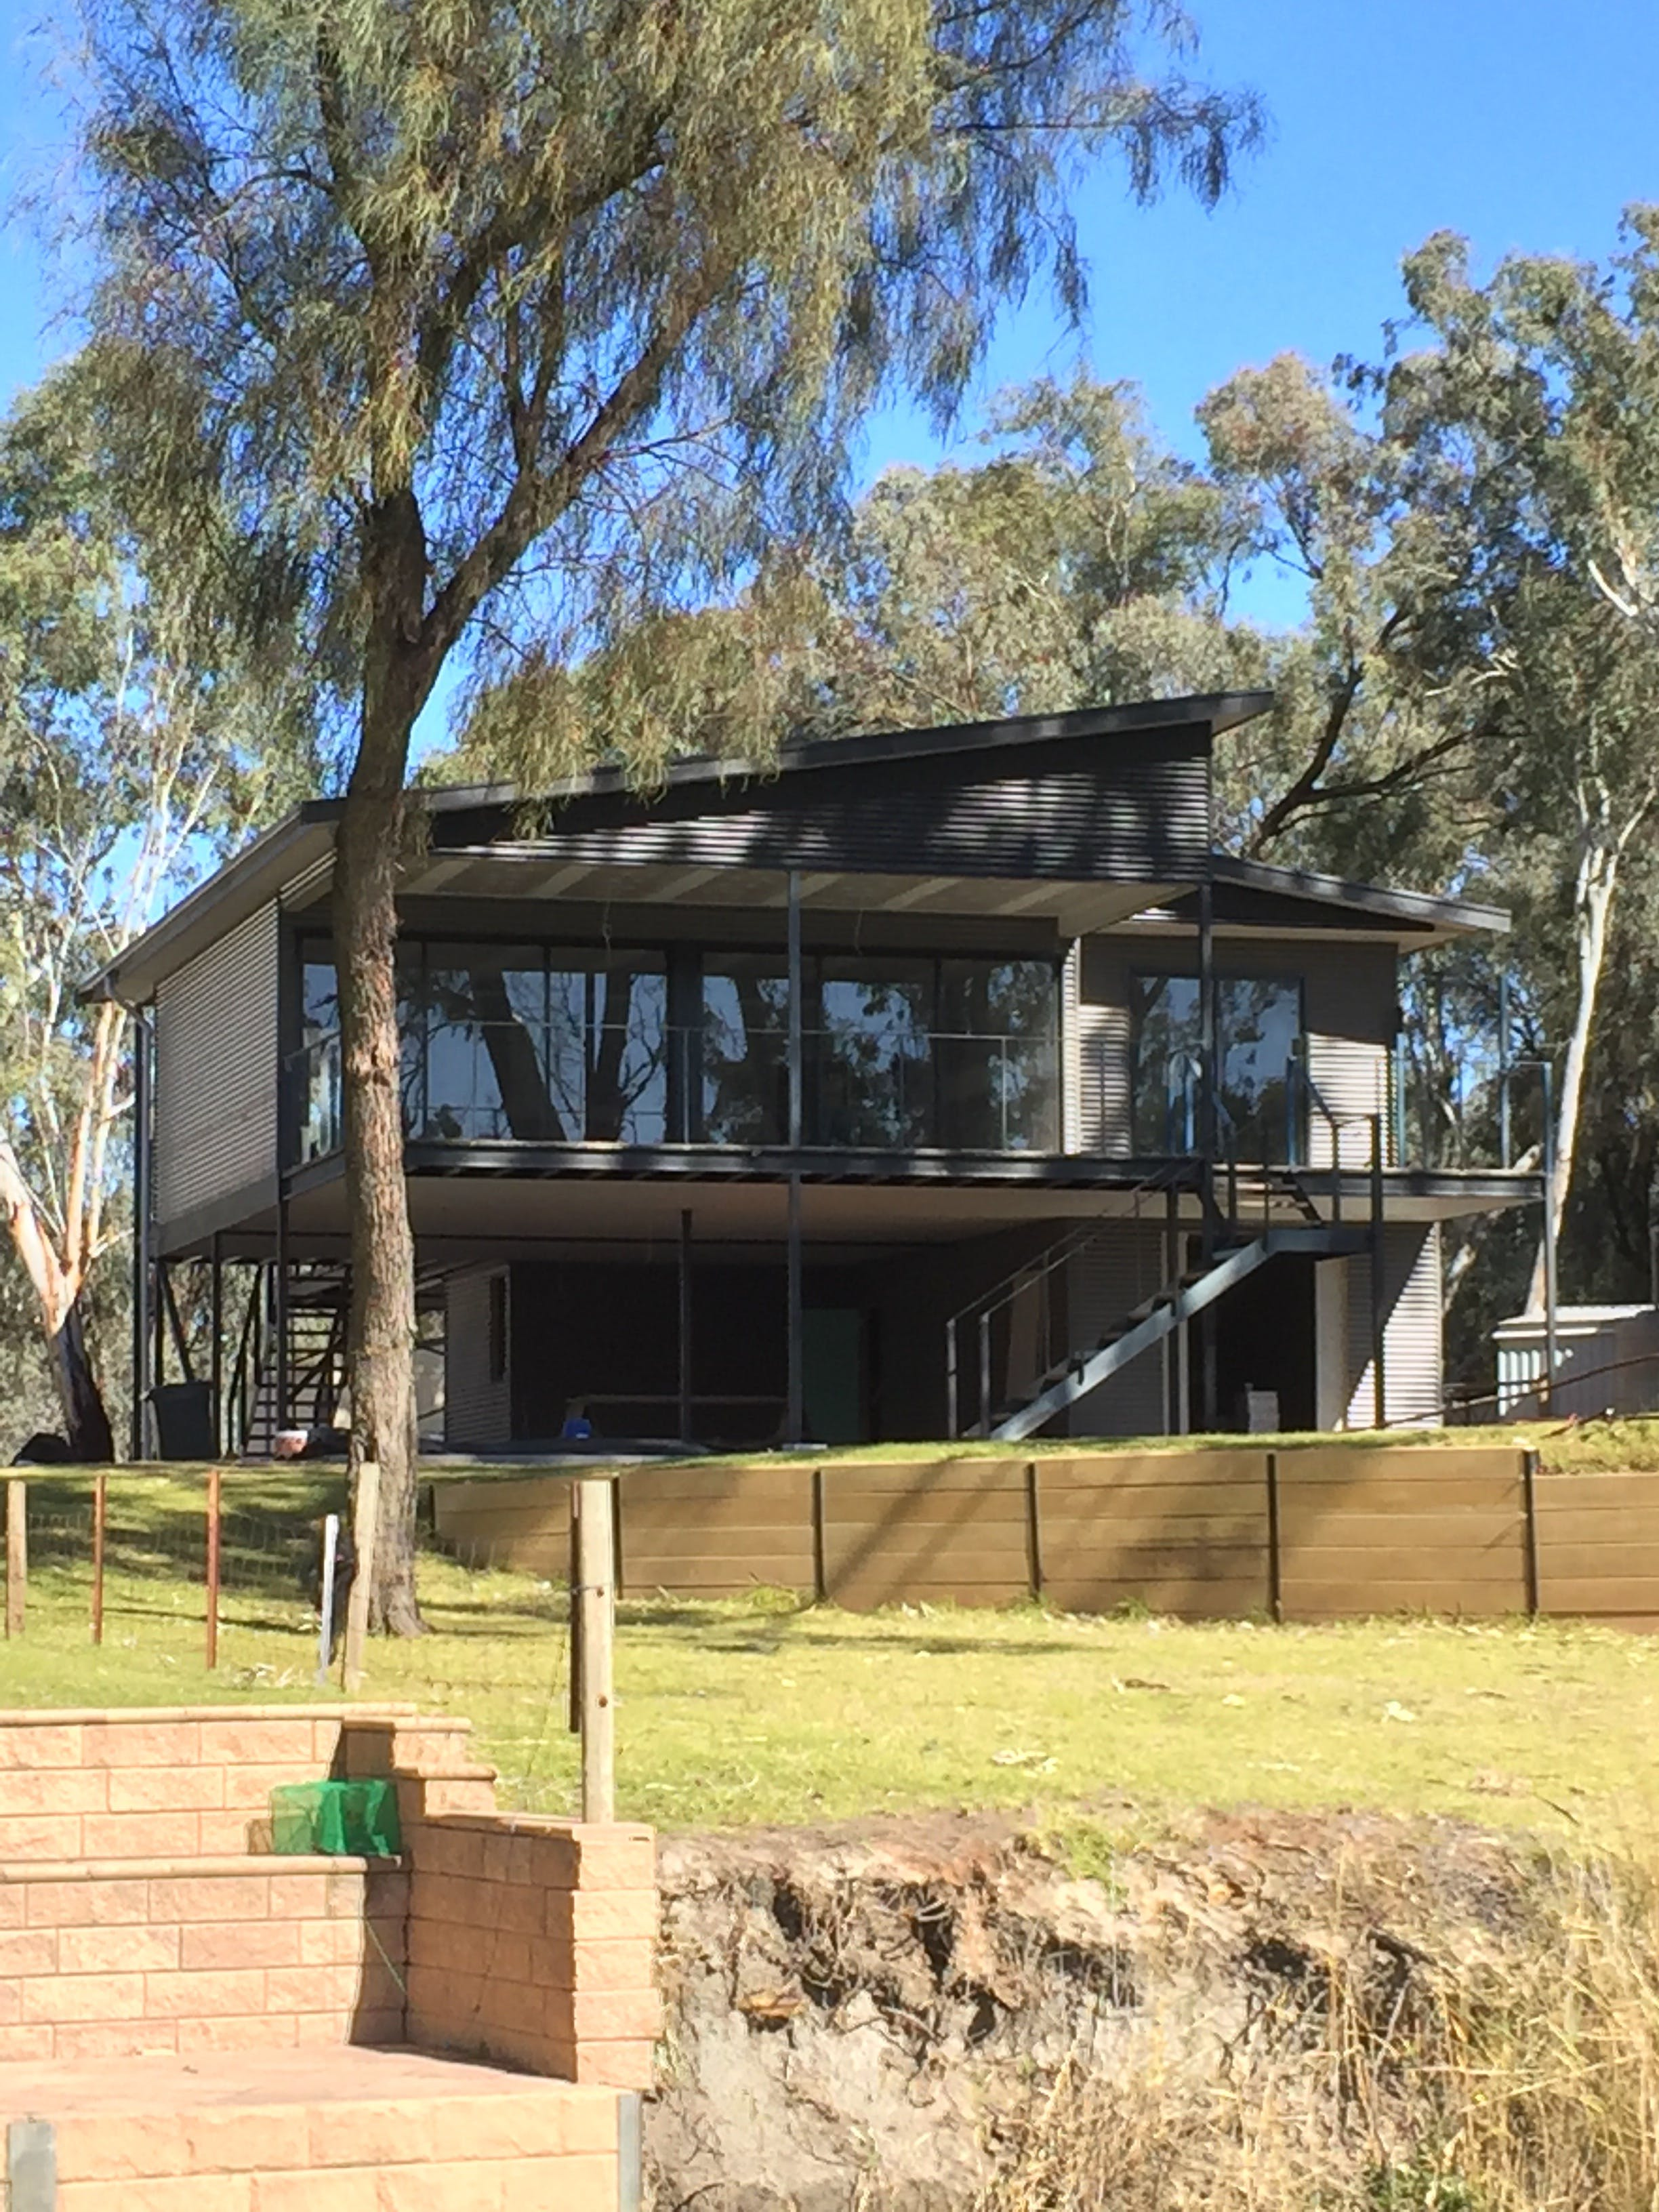 36 Brenda Park Via Morgan -River Shack Rentals - WA Accommodation